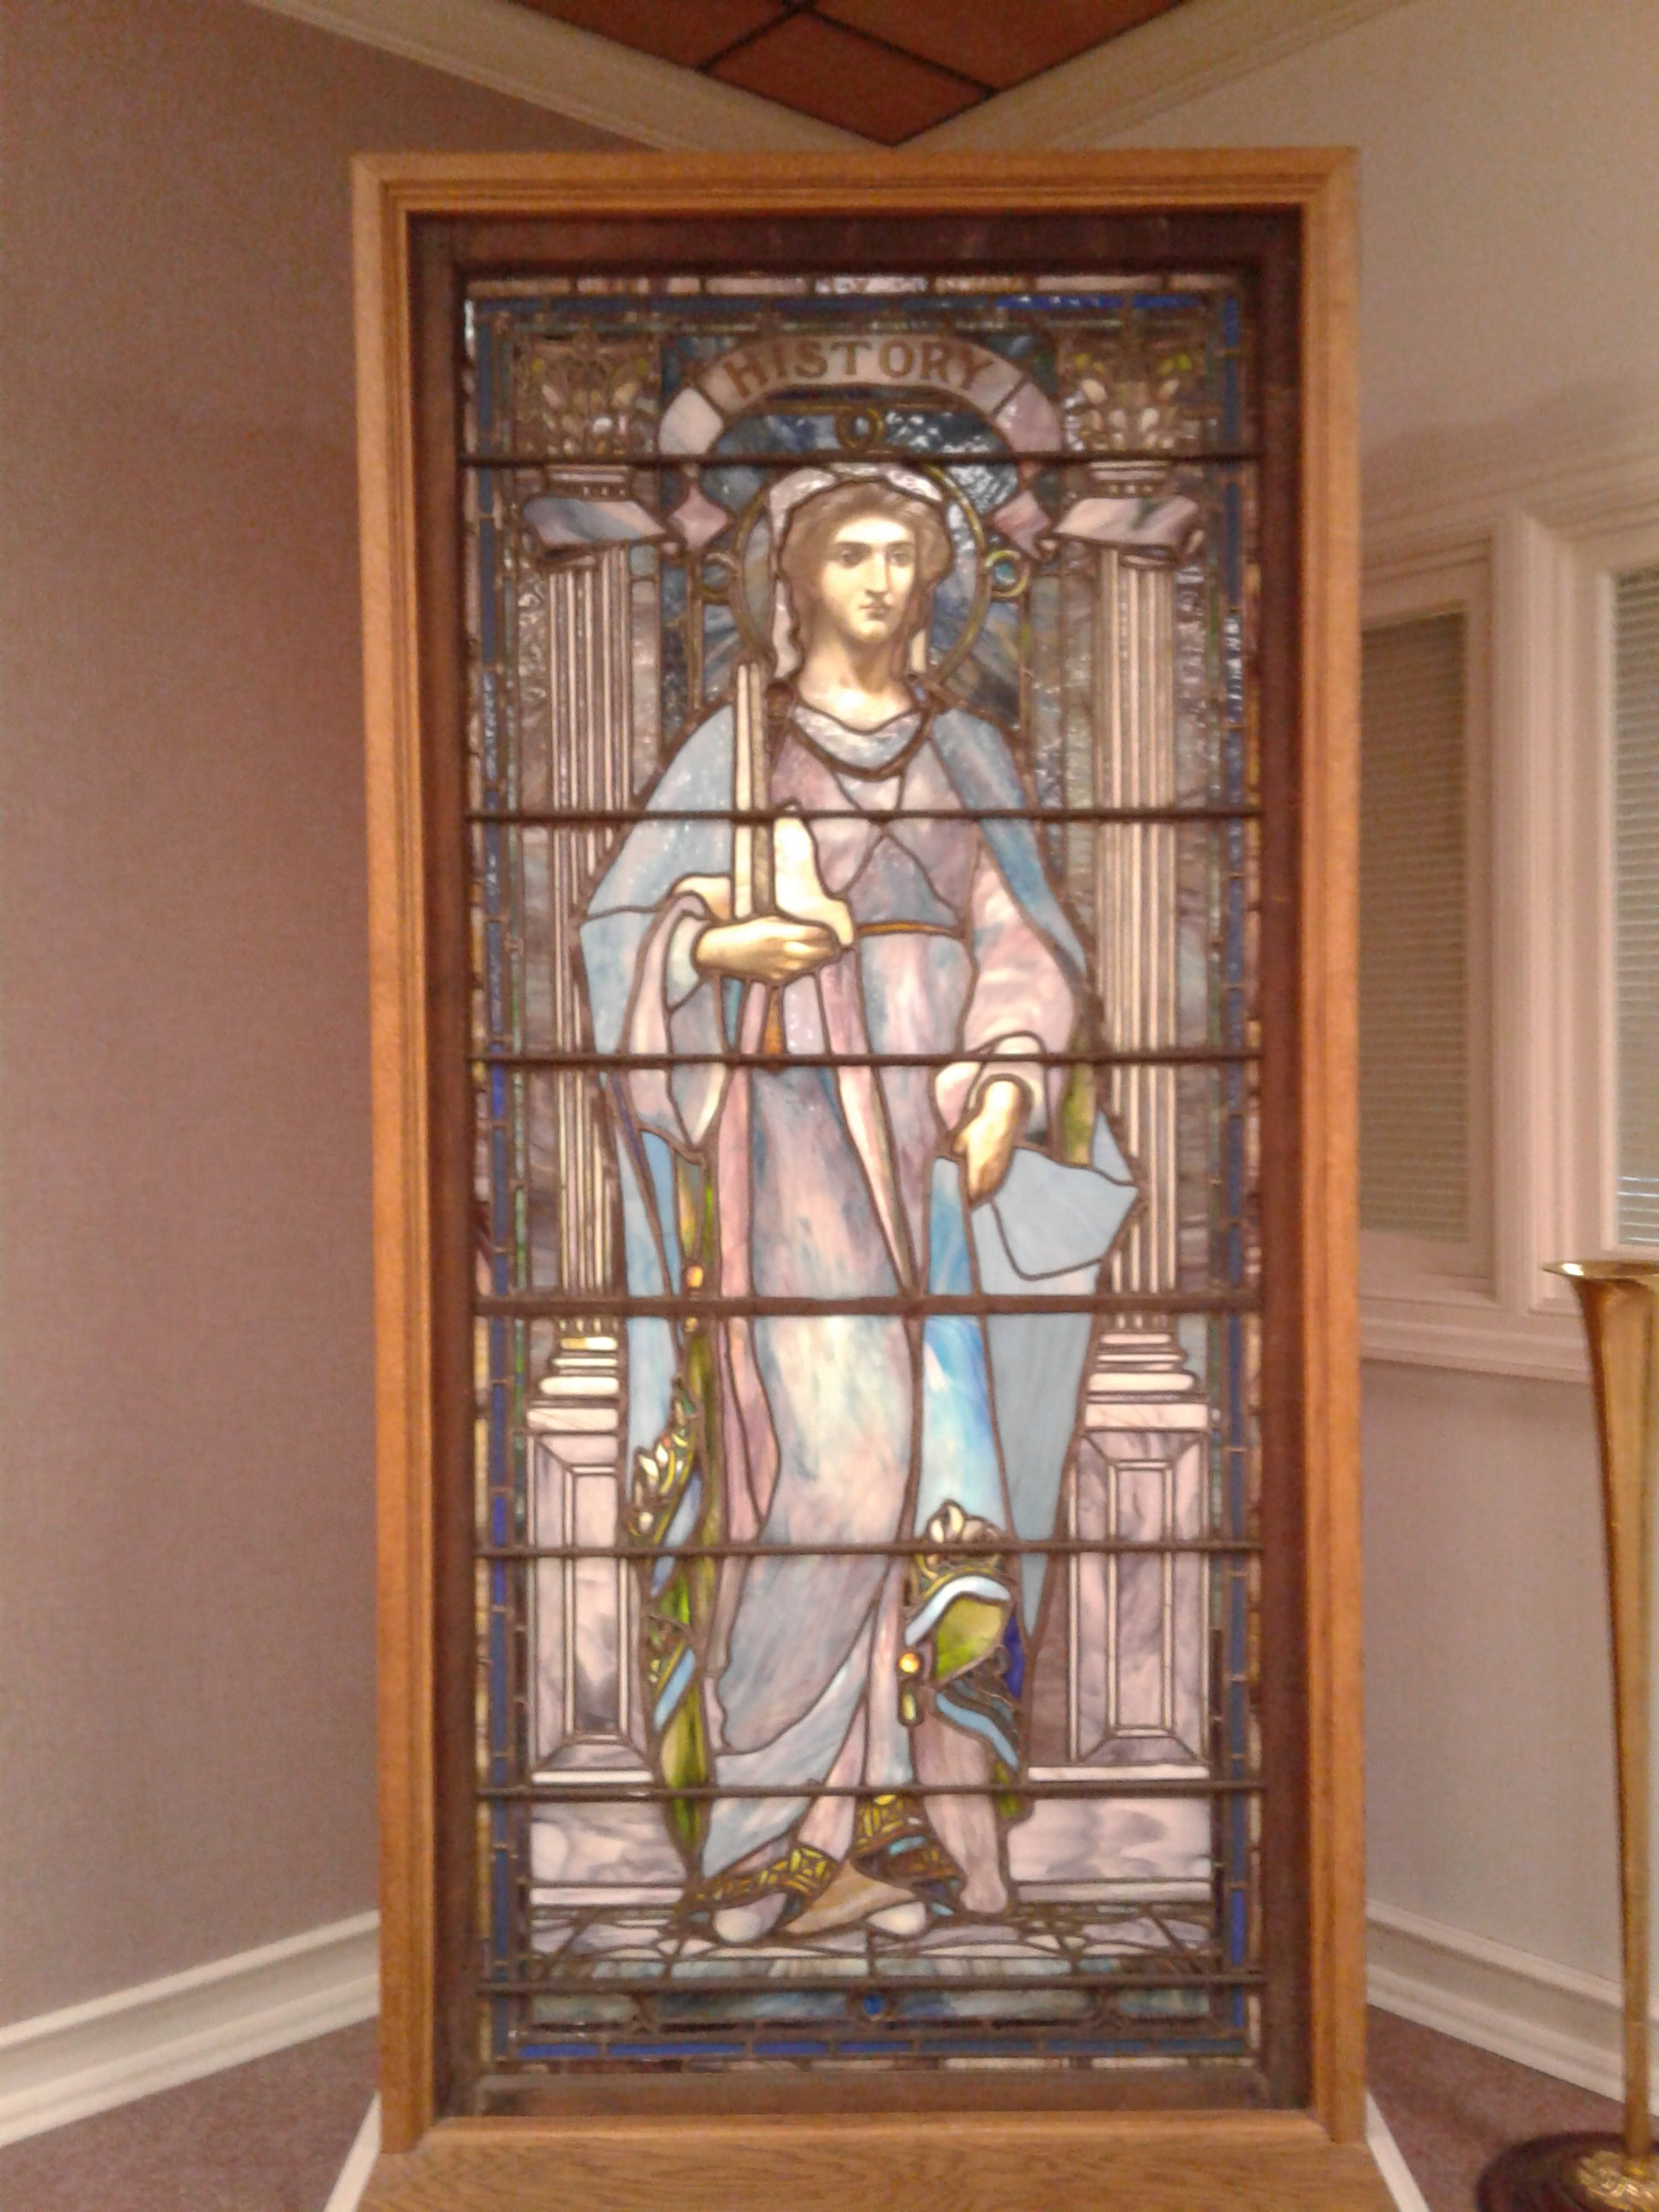 One of nine original stained glass windows commissioned by Frances Jones. This window represents the personification of History. Each of these windows originally hung in the original Jones Memorial Library.  ~Courtesy Jones Memorial Library~